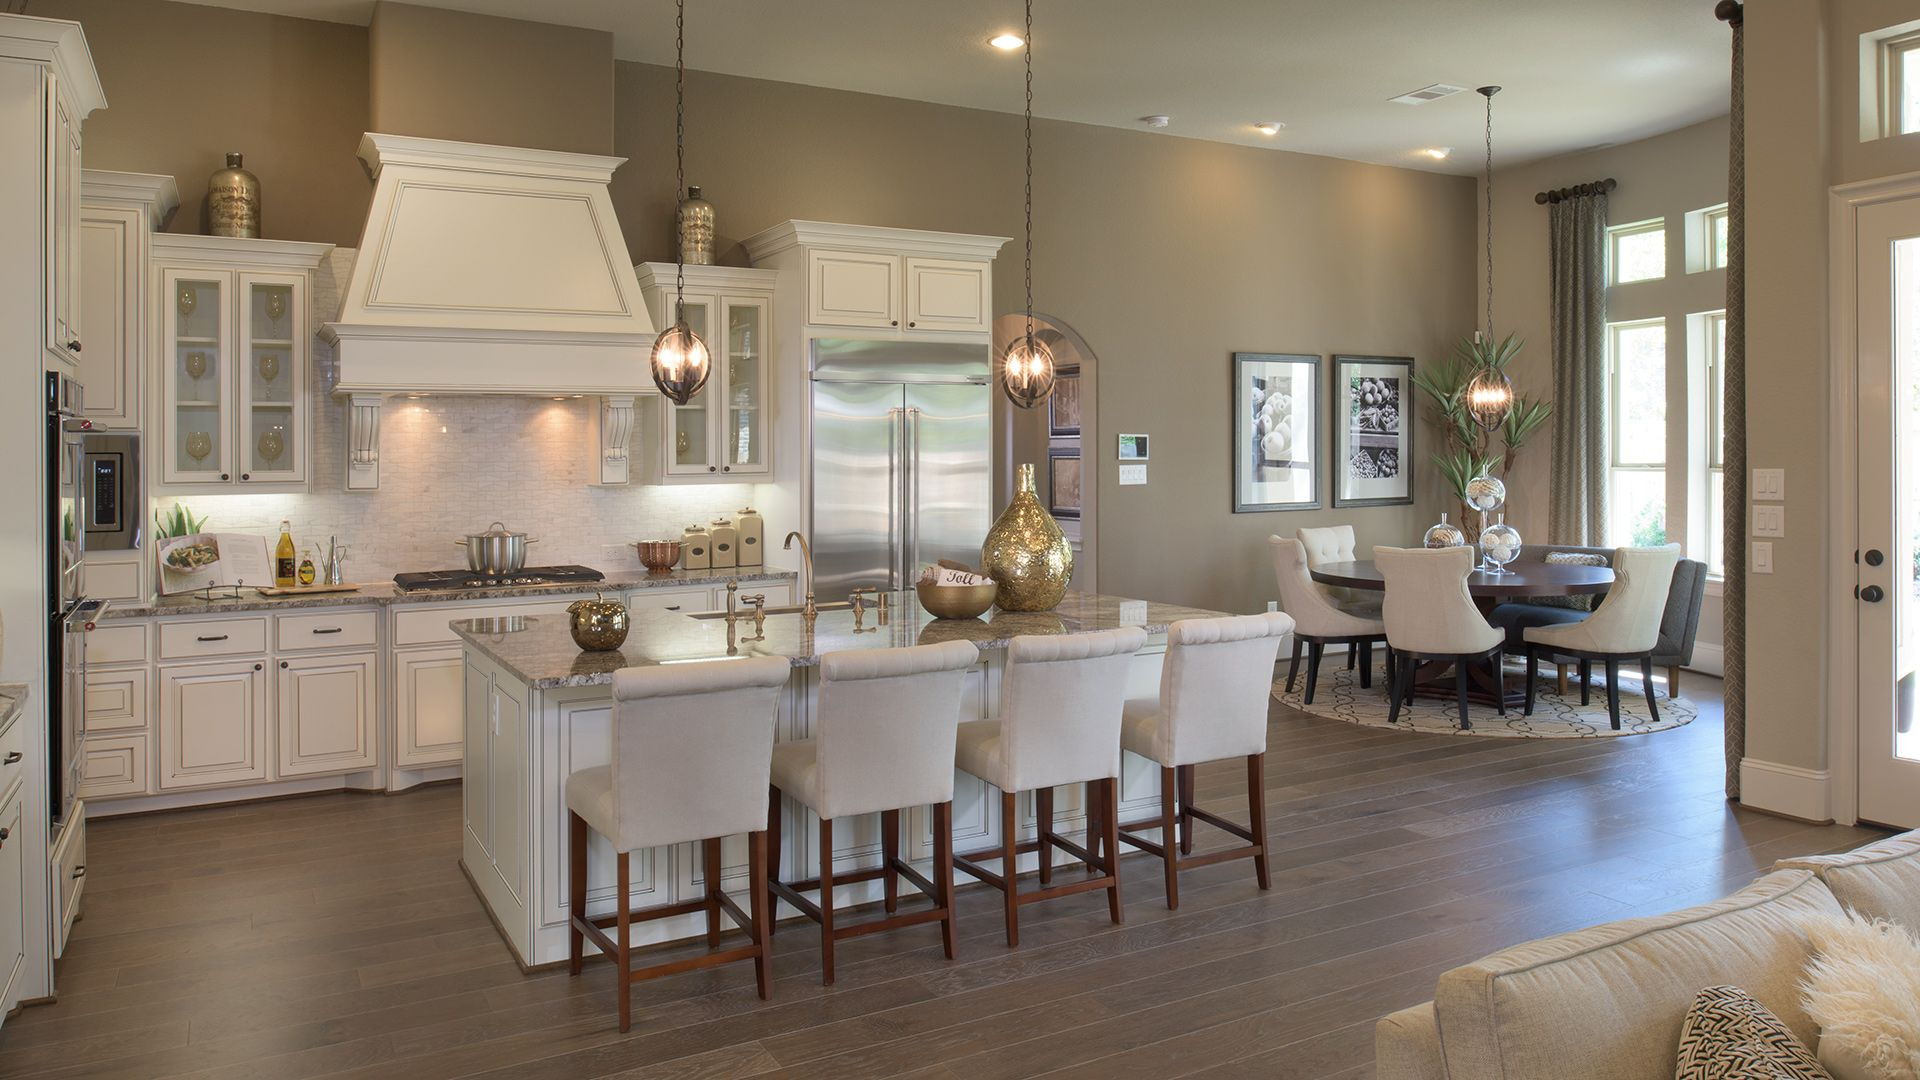 Pin by Kent Hueppelsheuser on House plans Open concept